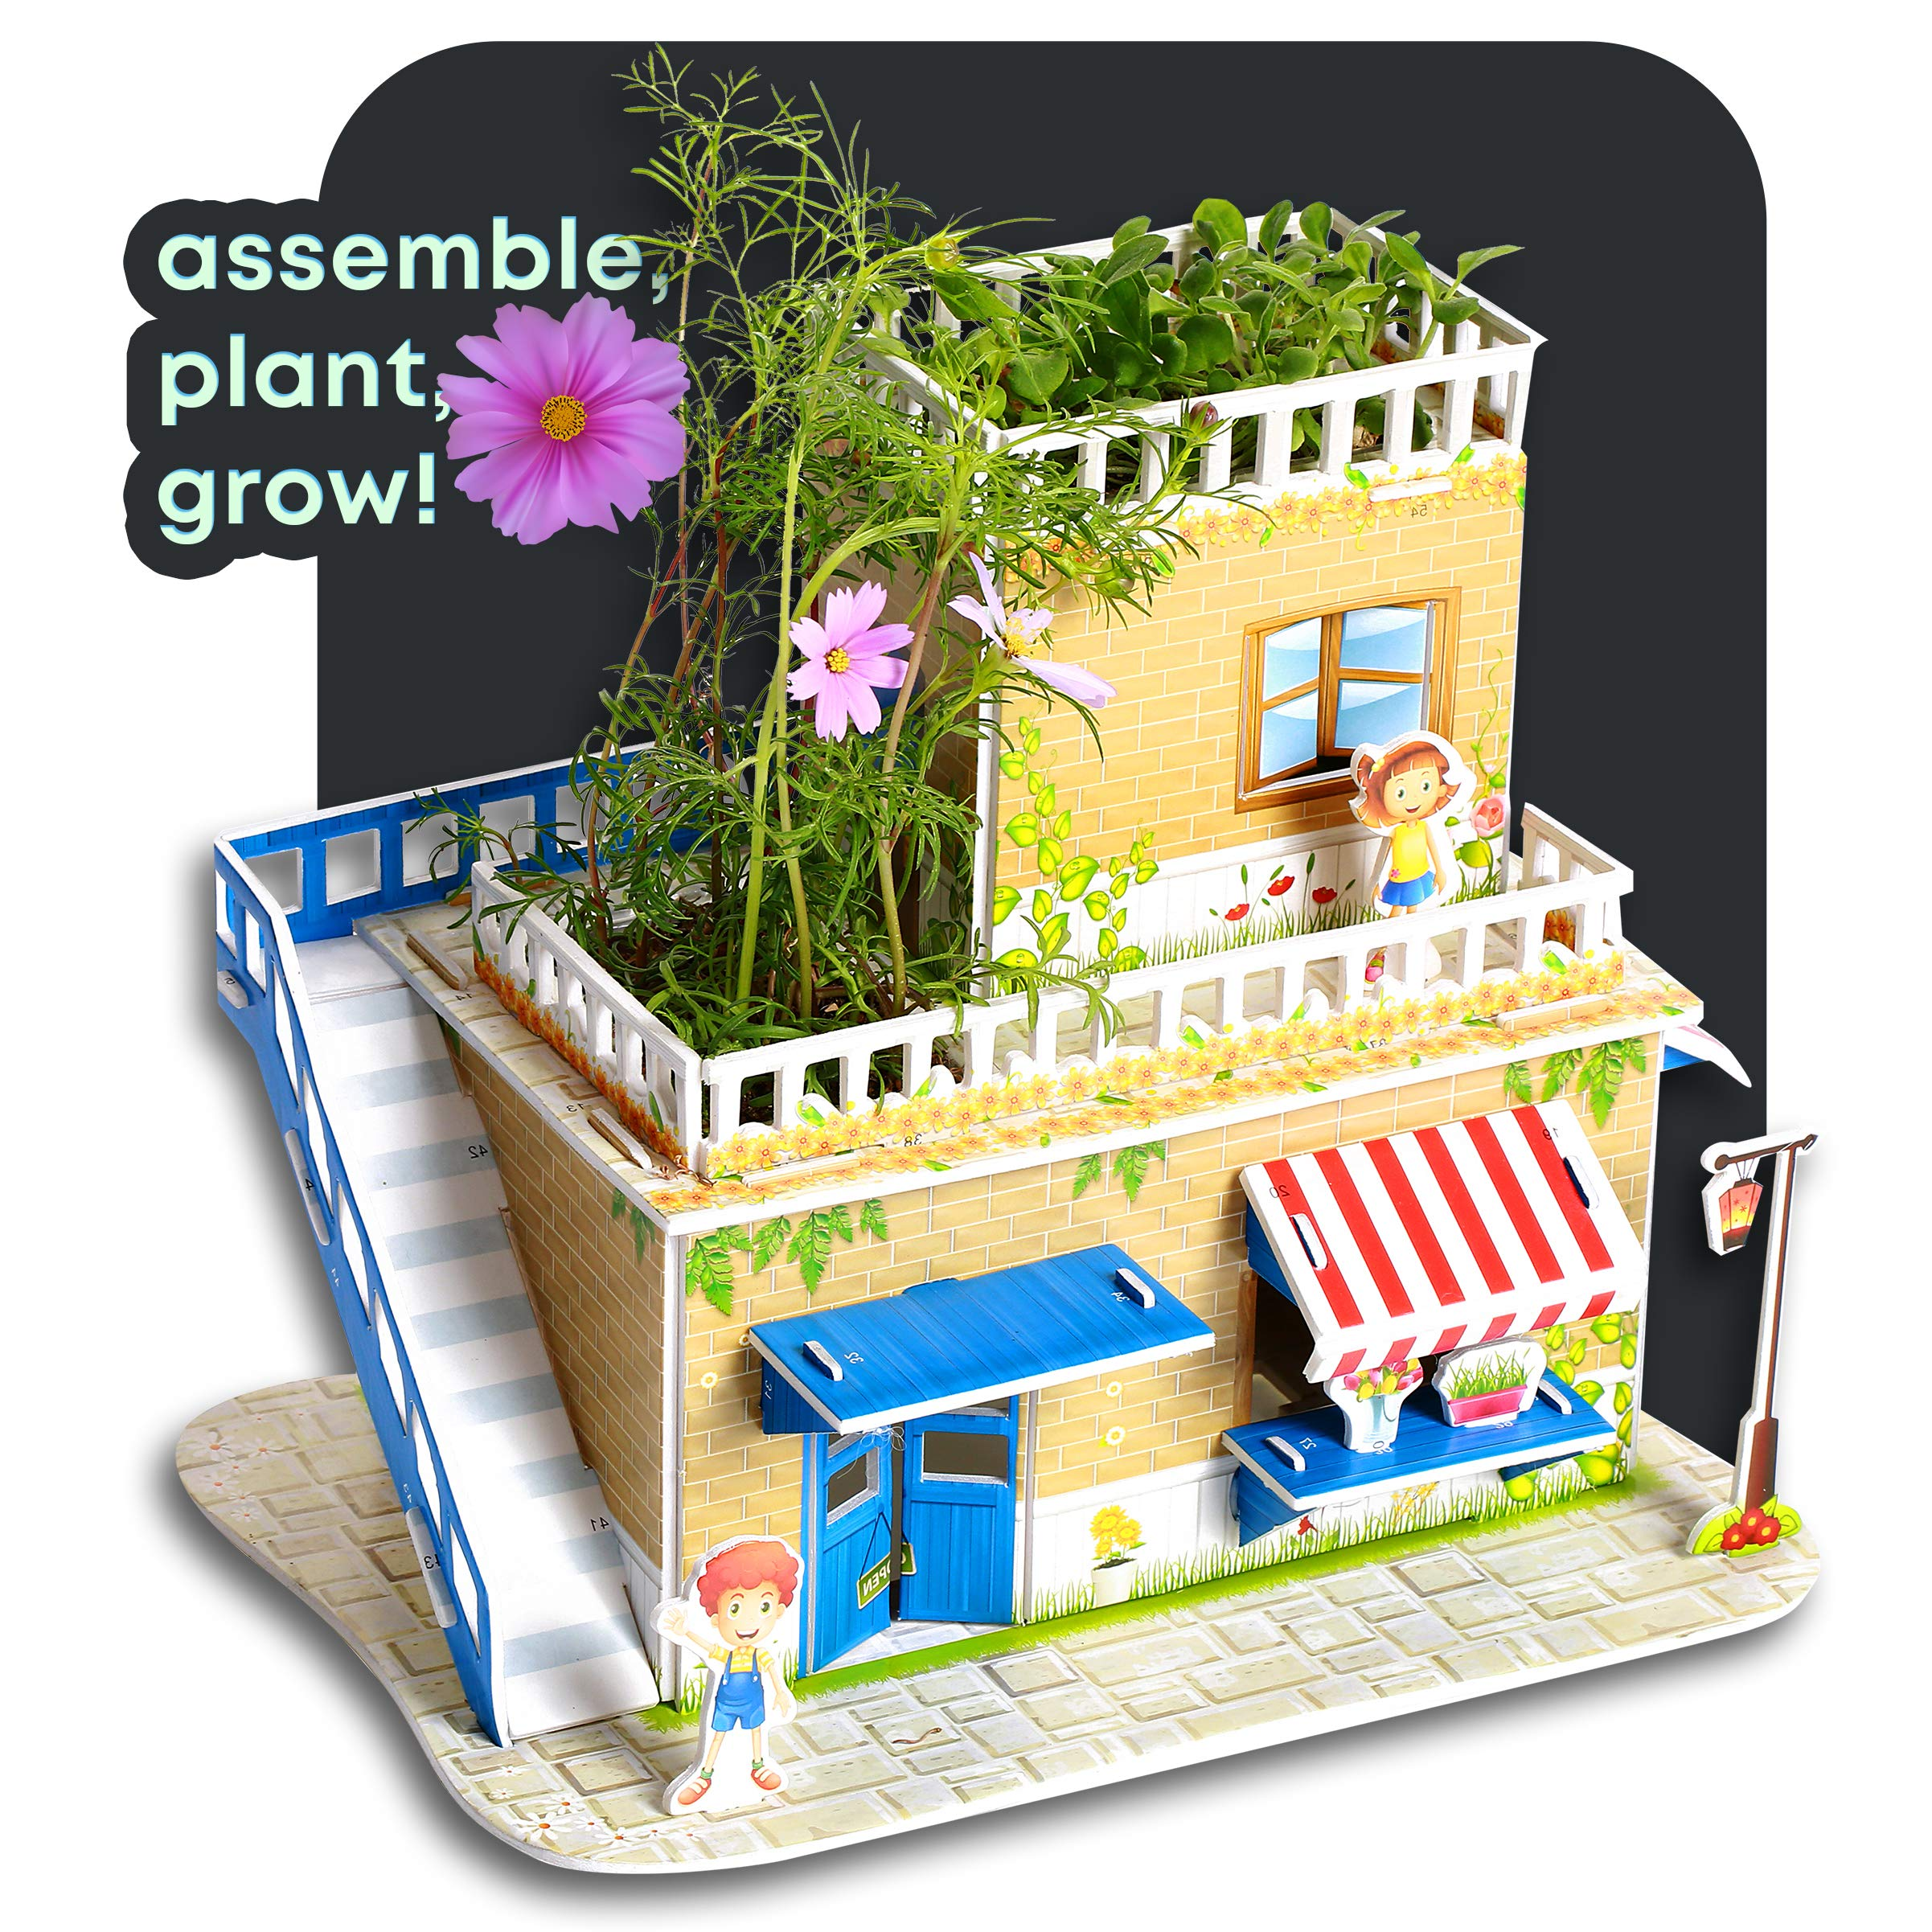 Garden 3D Puzzle Kit - Build a Flower Shop and Grow a Real Garden with Flowers, Cosmos & Violet : Easy DIY Crafts for Kids - with Detailed Instruction Guide : Great Educational Gift for Girls & Boys